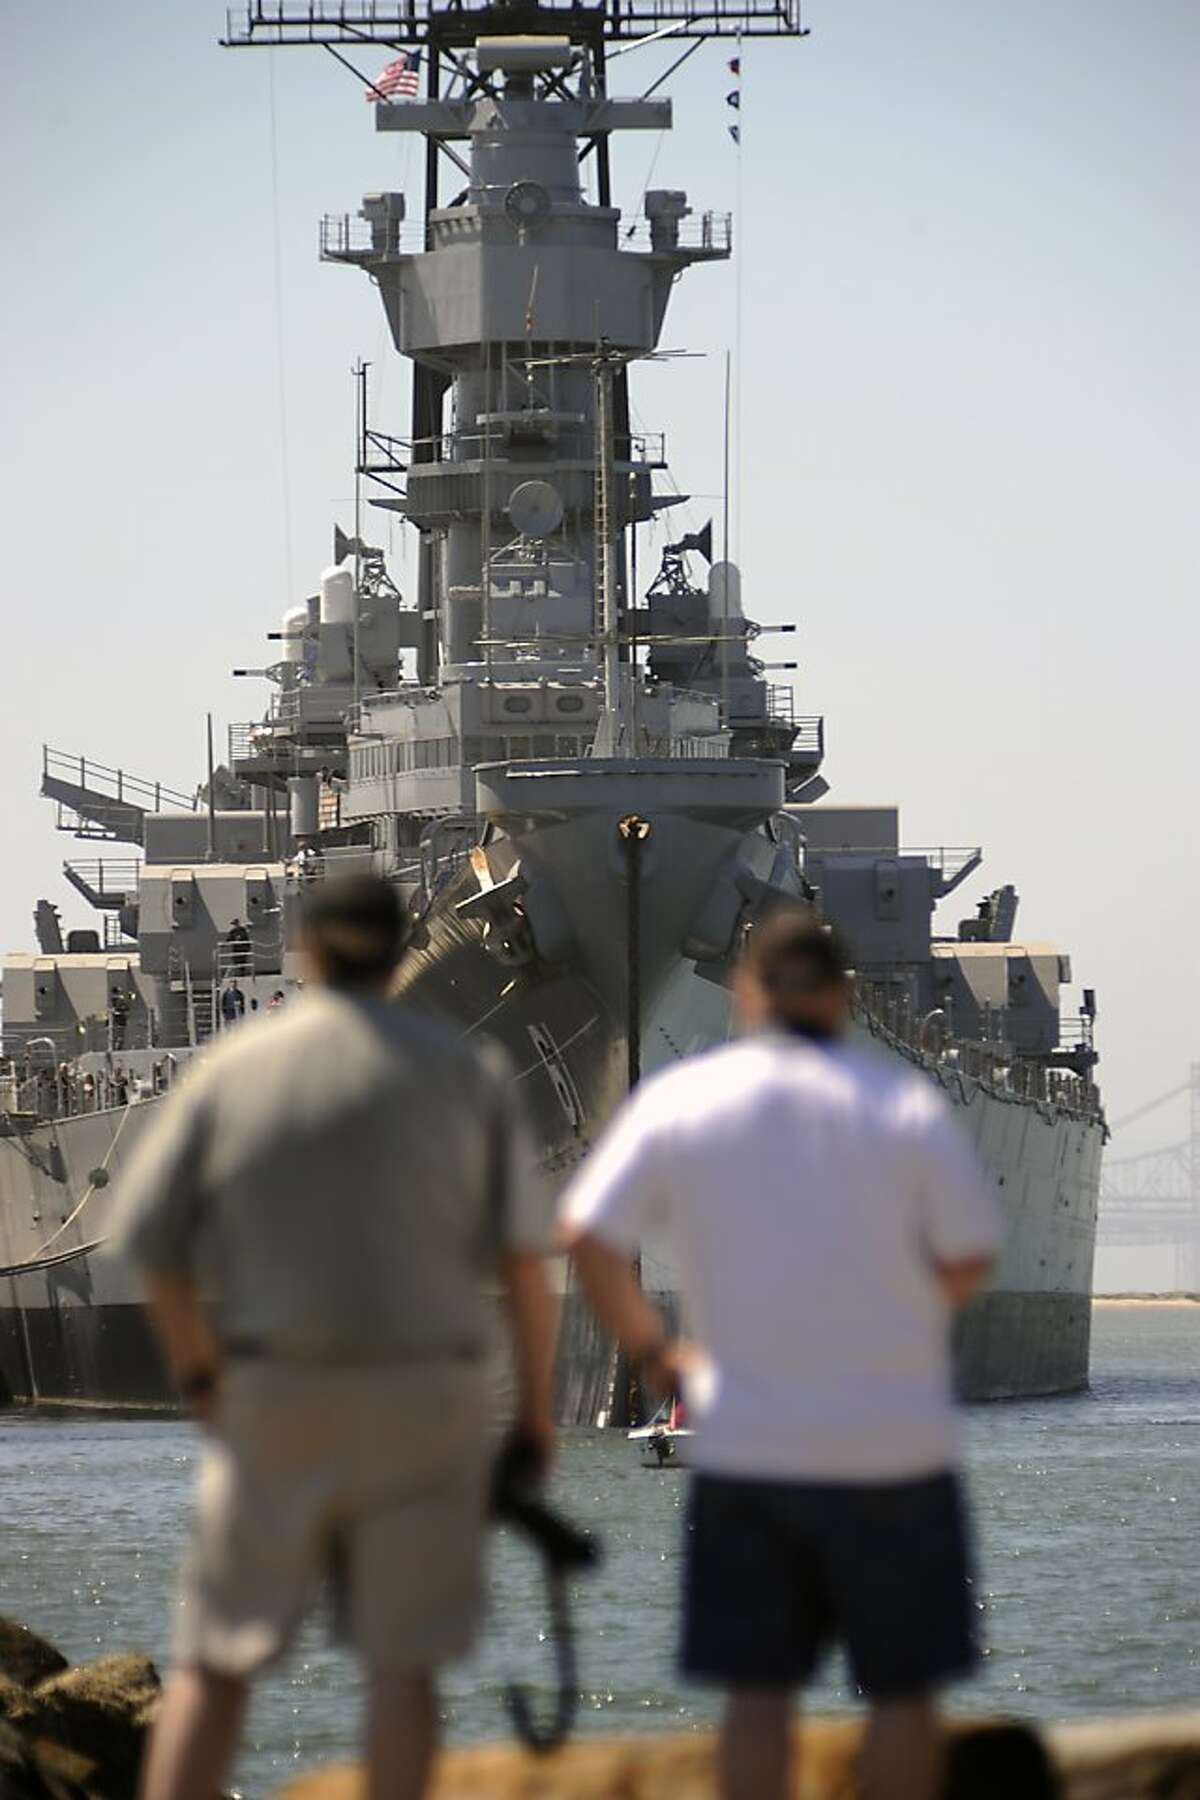 Visitors get a view of the USS Iowa BB-61 Battleship as it sits at dock in Richmond, CA Sunday May 20th, 2012. The Iowa was ready to be towed to Los Angeles today to become a permanent museum but the departure was delayed due to weather issues down the California coast.